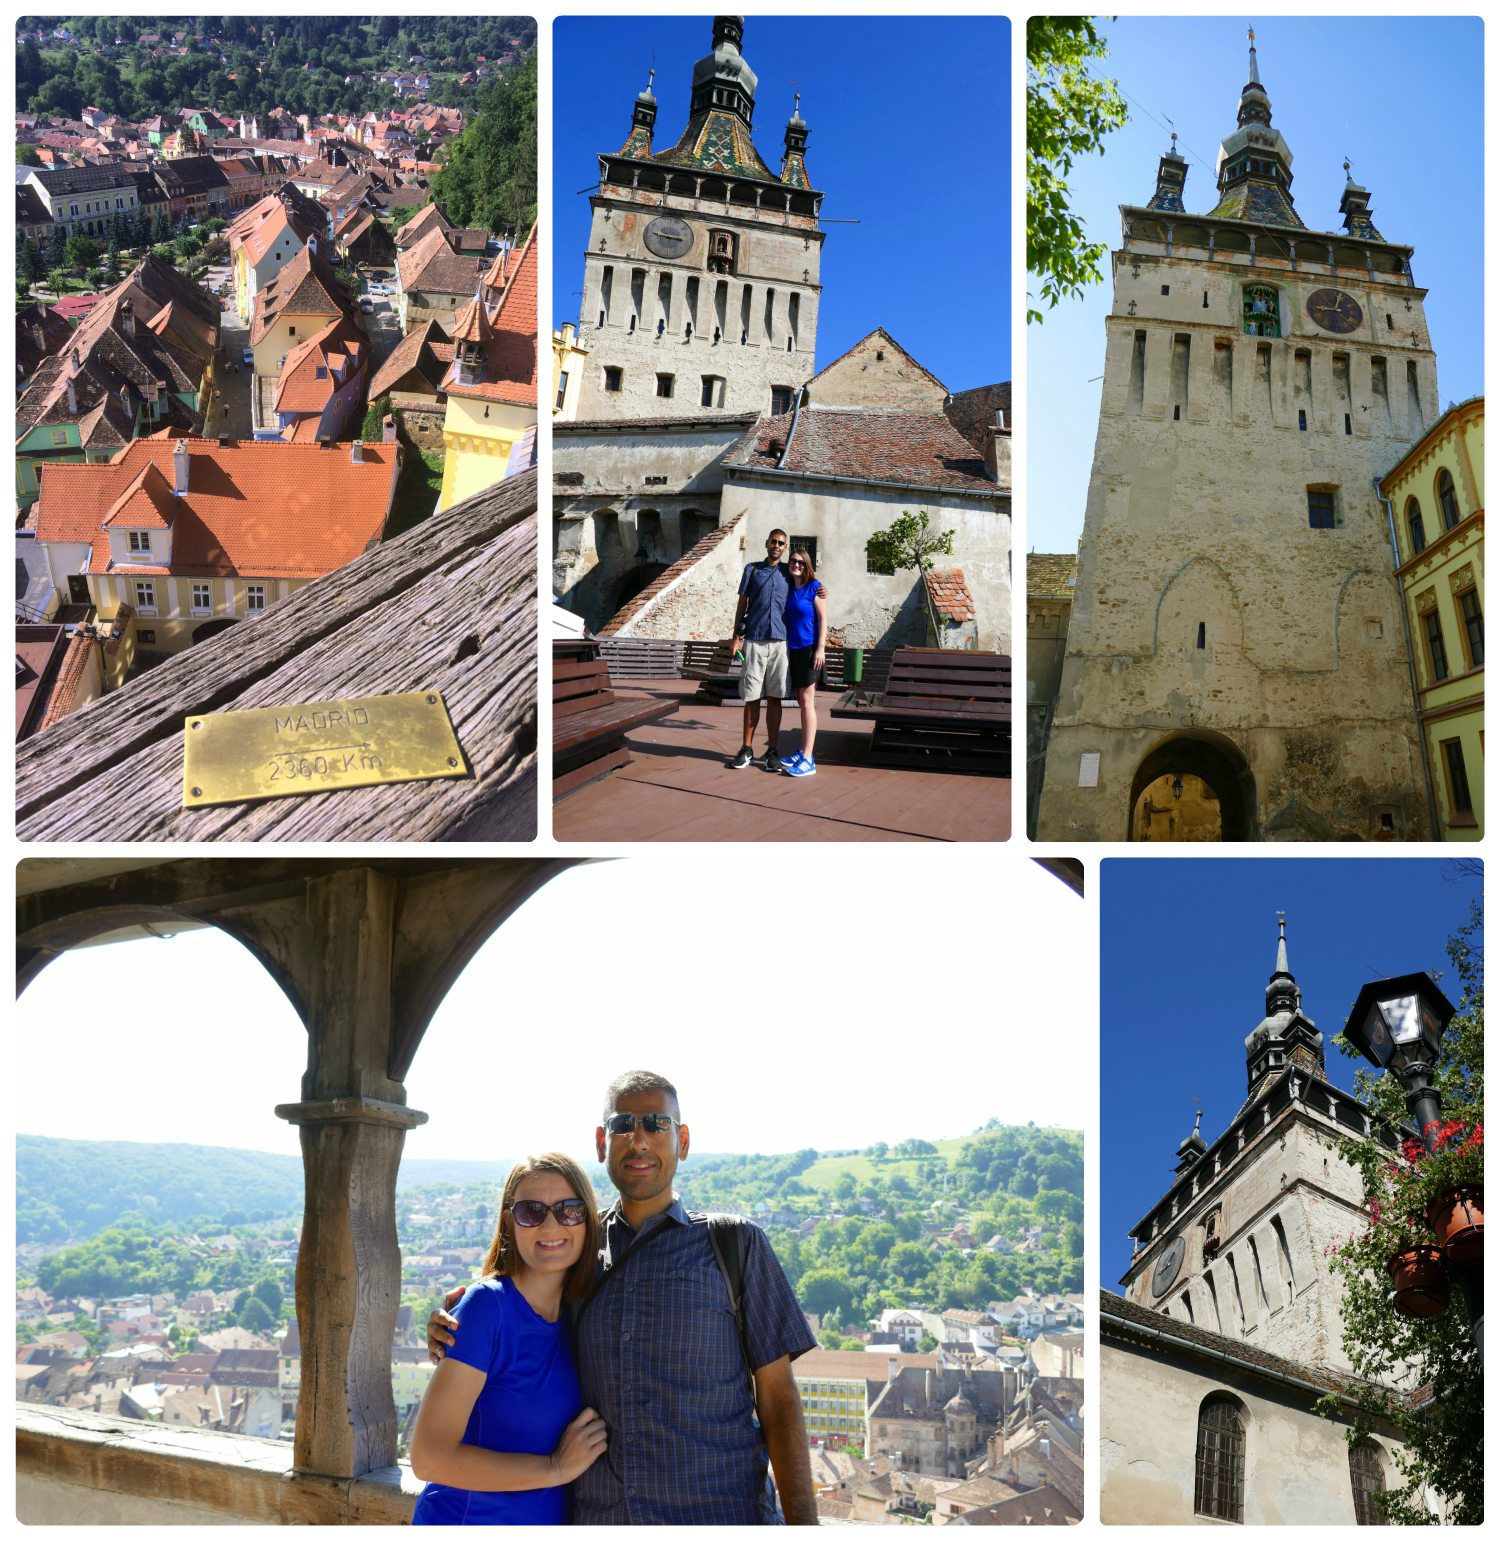 "If you're wondering if the views of Sighisoara and the surrounding area are worth a climb to the top of the Clock Tower in the center of the Citadel, we'd have to emphatically say ""Yes!"". We were able to walk completely around the Clock Tower (360 degrees), and appreciated that there was a clear, unobstructed view of the surrounding area that seemed to go on for miles. As a bonus, there were many small placards on the railing that gave the distance and direction to large international cities."